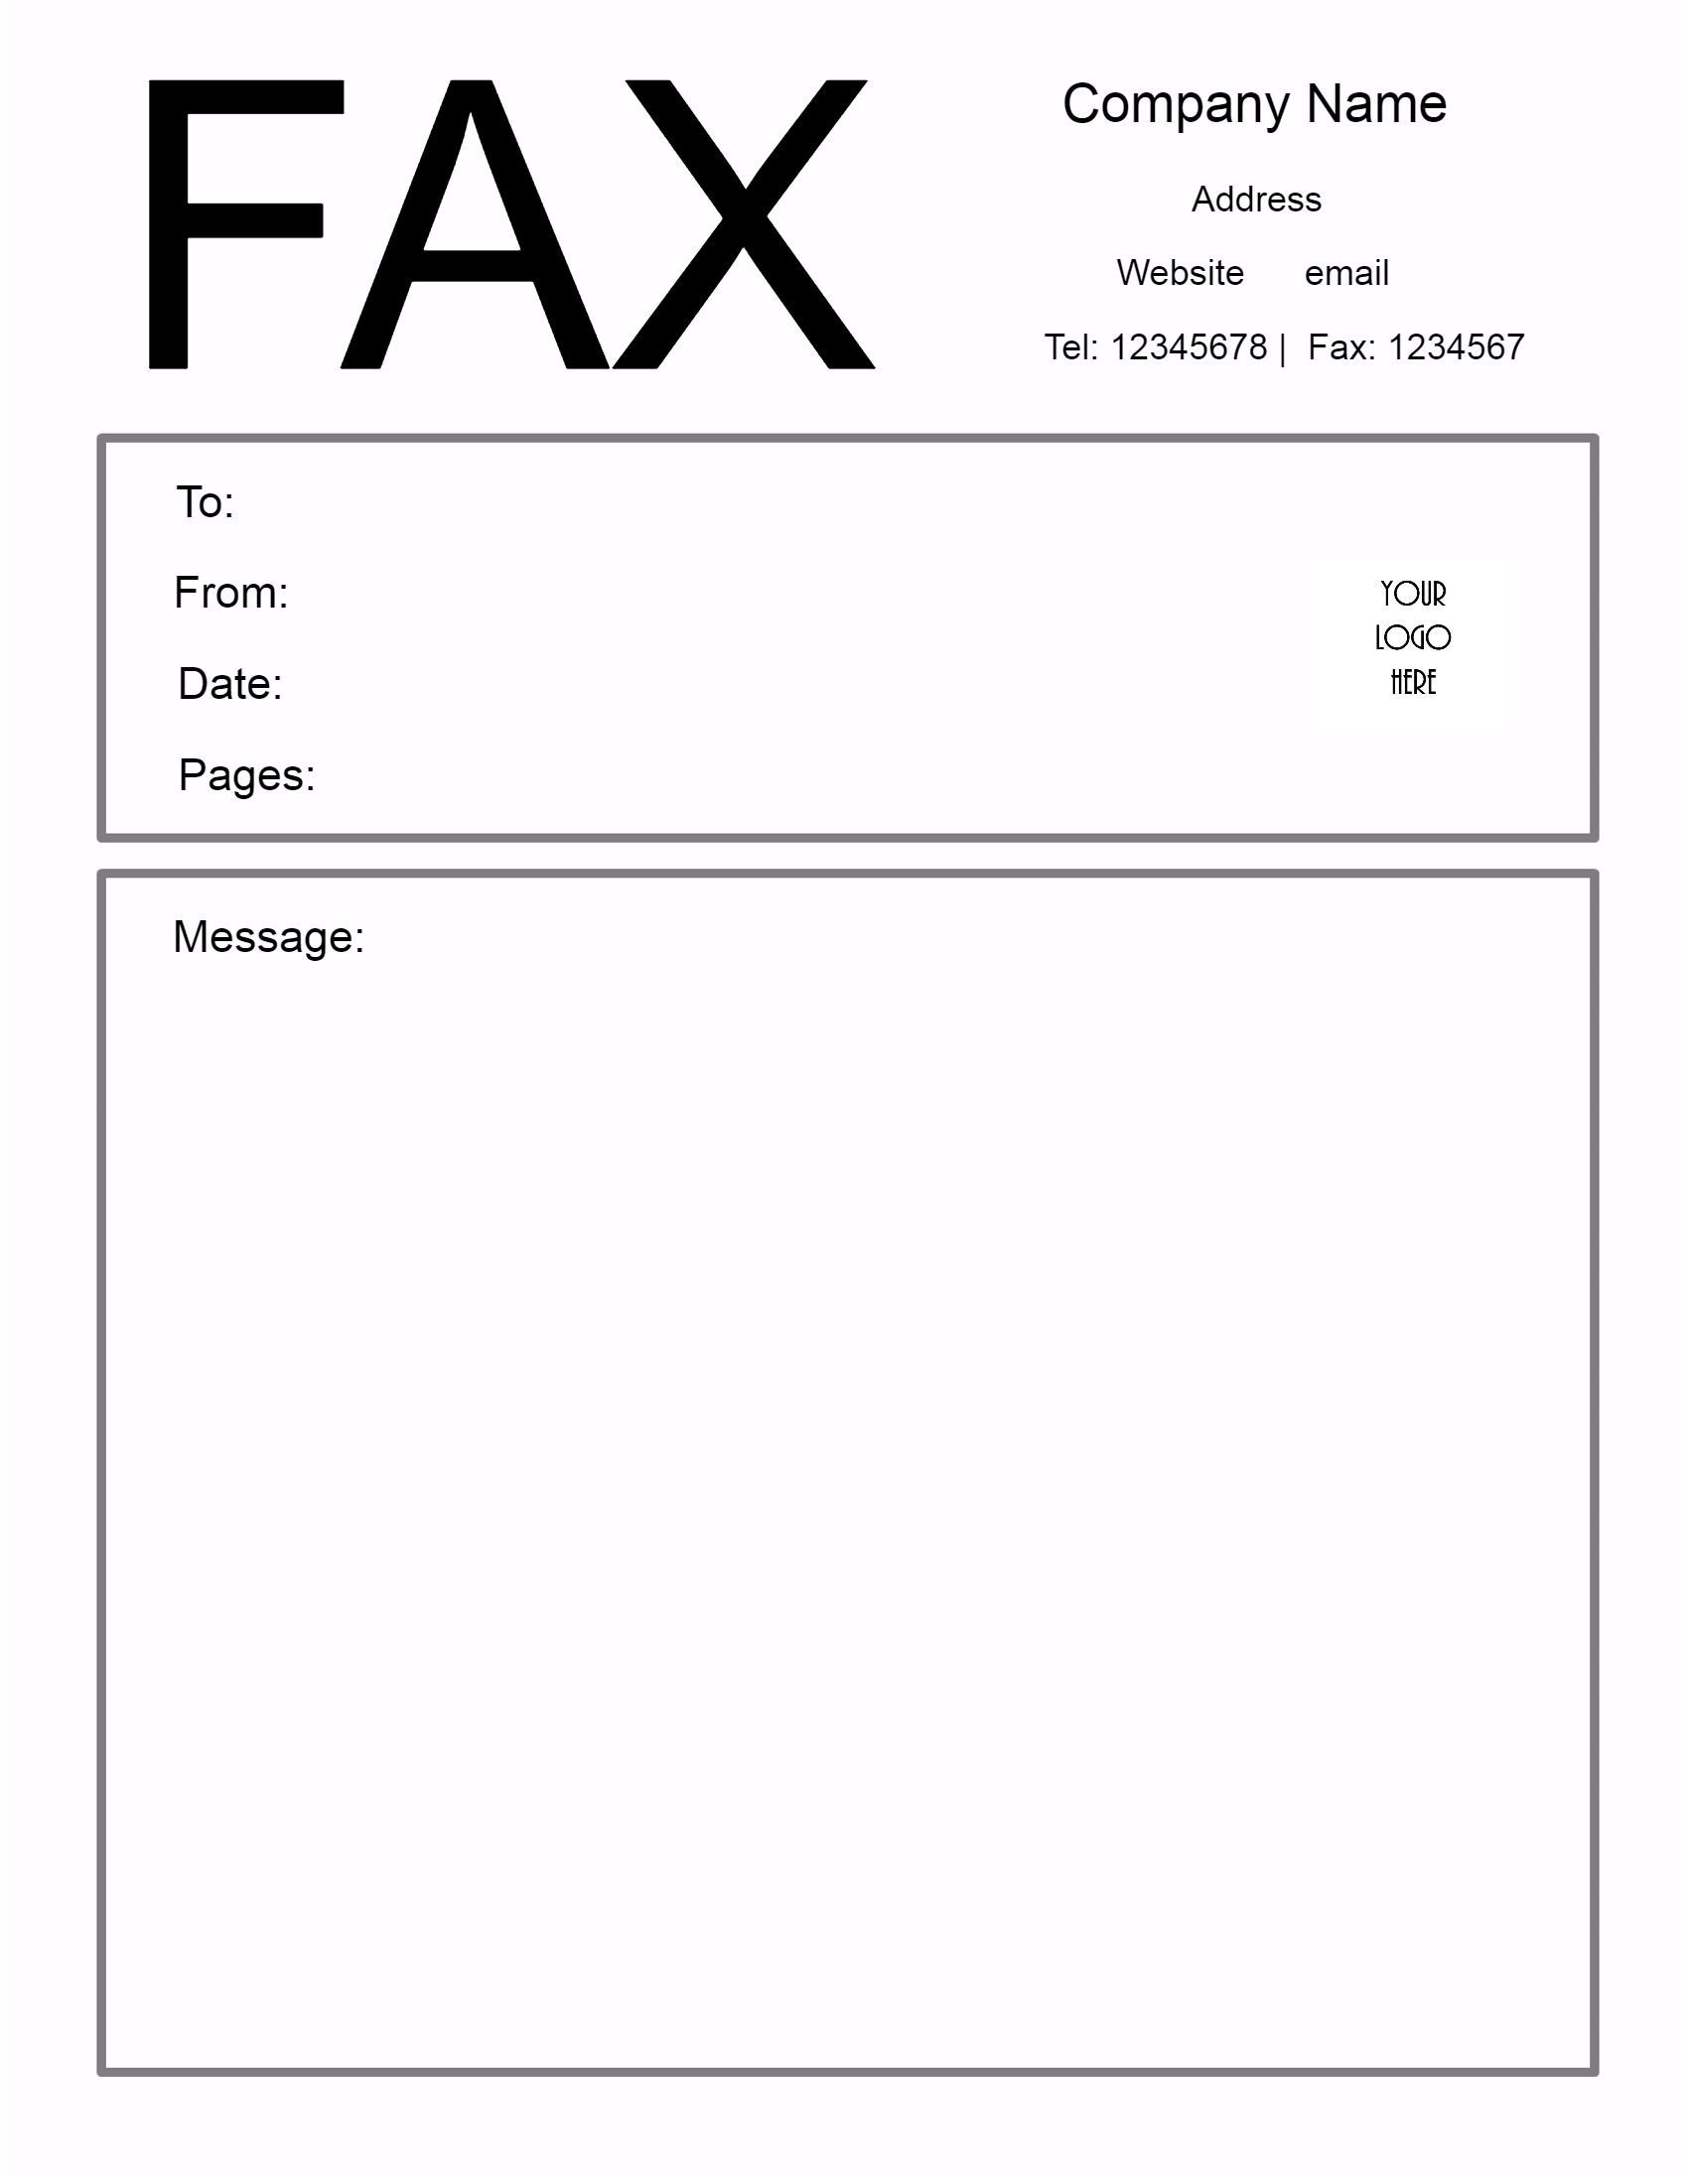 009 Excellent General Fax Cover Letter Template Highest Clarity  Sheet Word Confidential ExampleFull